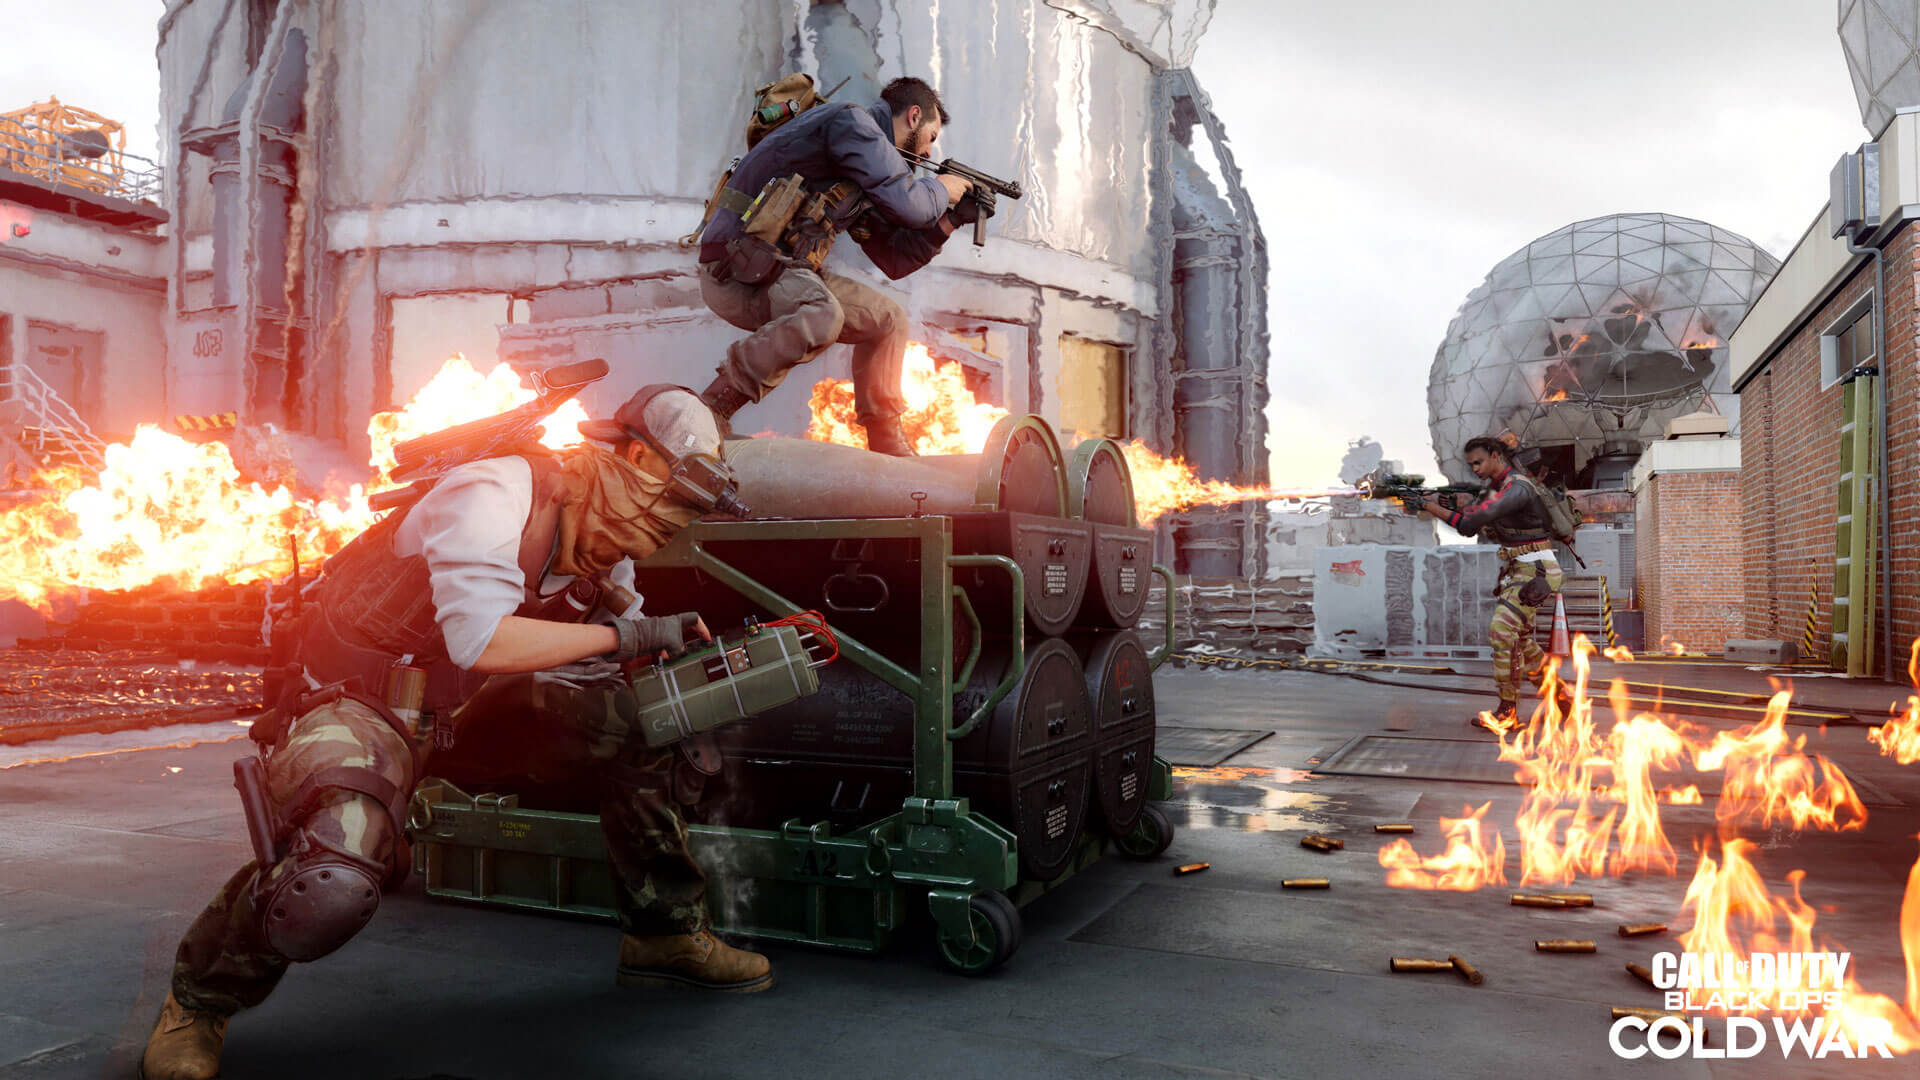 Call of Duty: Black Ops Cold War & Warzone: Season 5 roadmap and content revealed